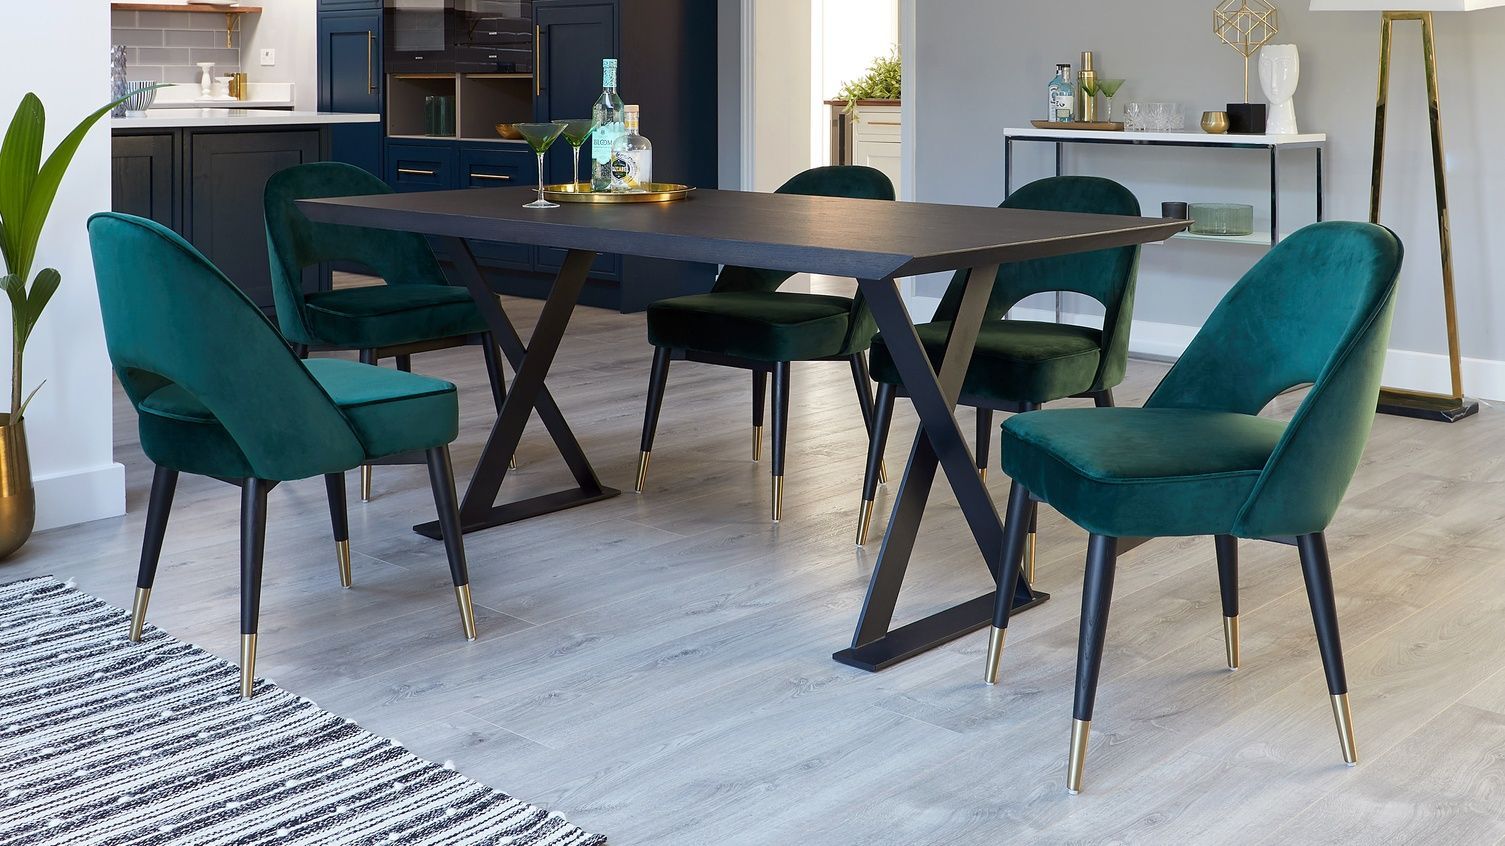 Nala Large Dark Oak Dining Table And Chairs 6 Seater Dining Table Dining Chairs Oak Dining Table